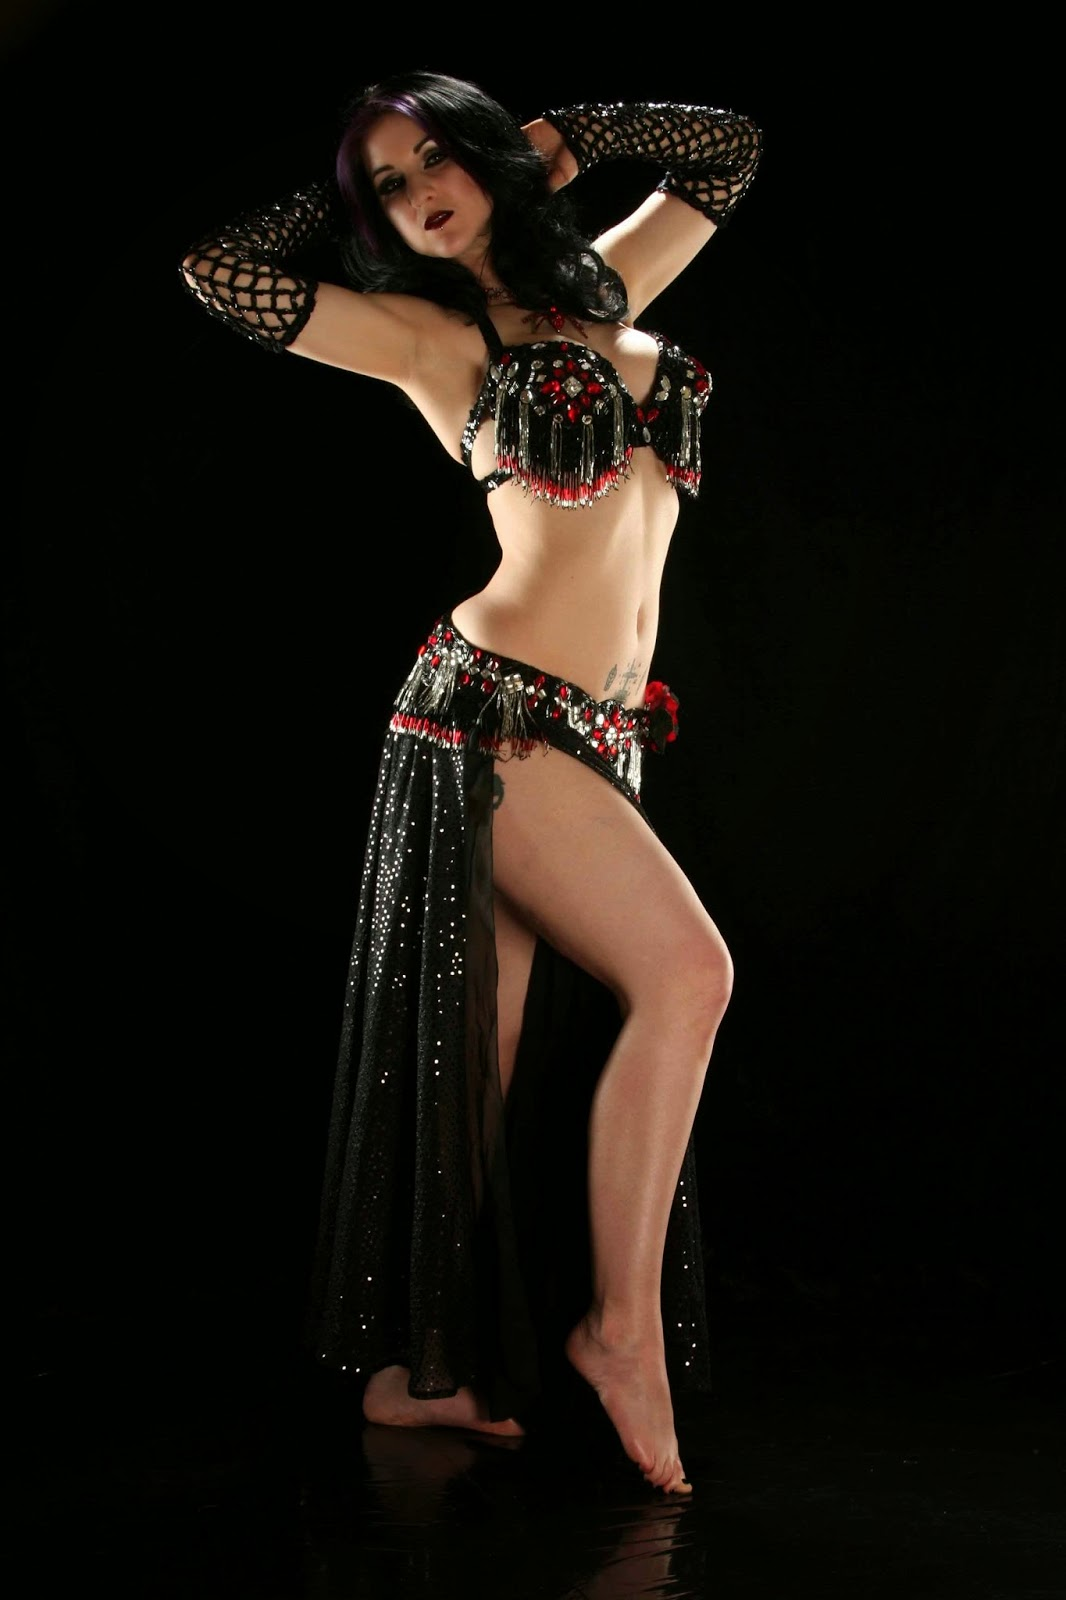 Sexy argentinian woman belly dancer by rocketclips